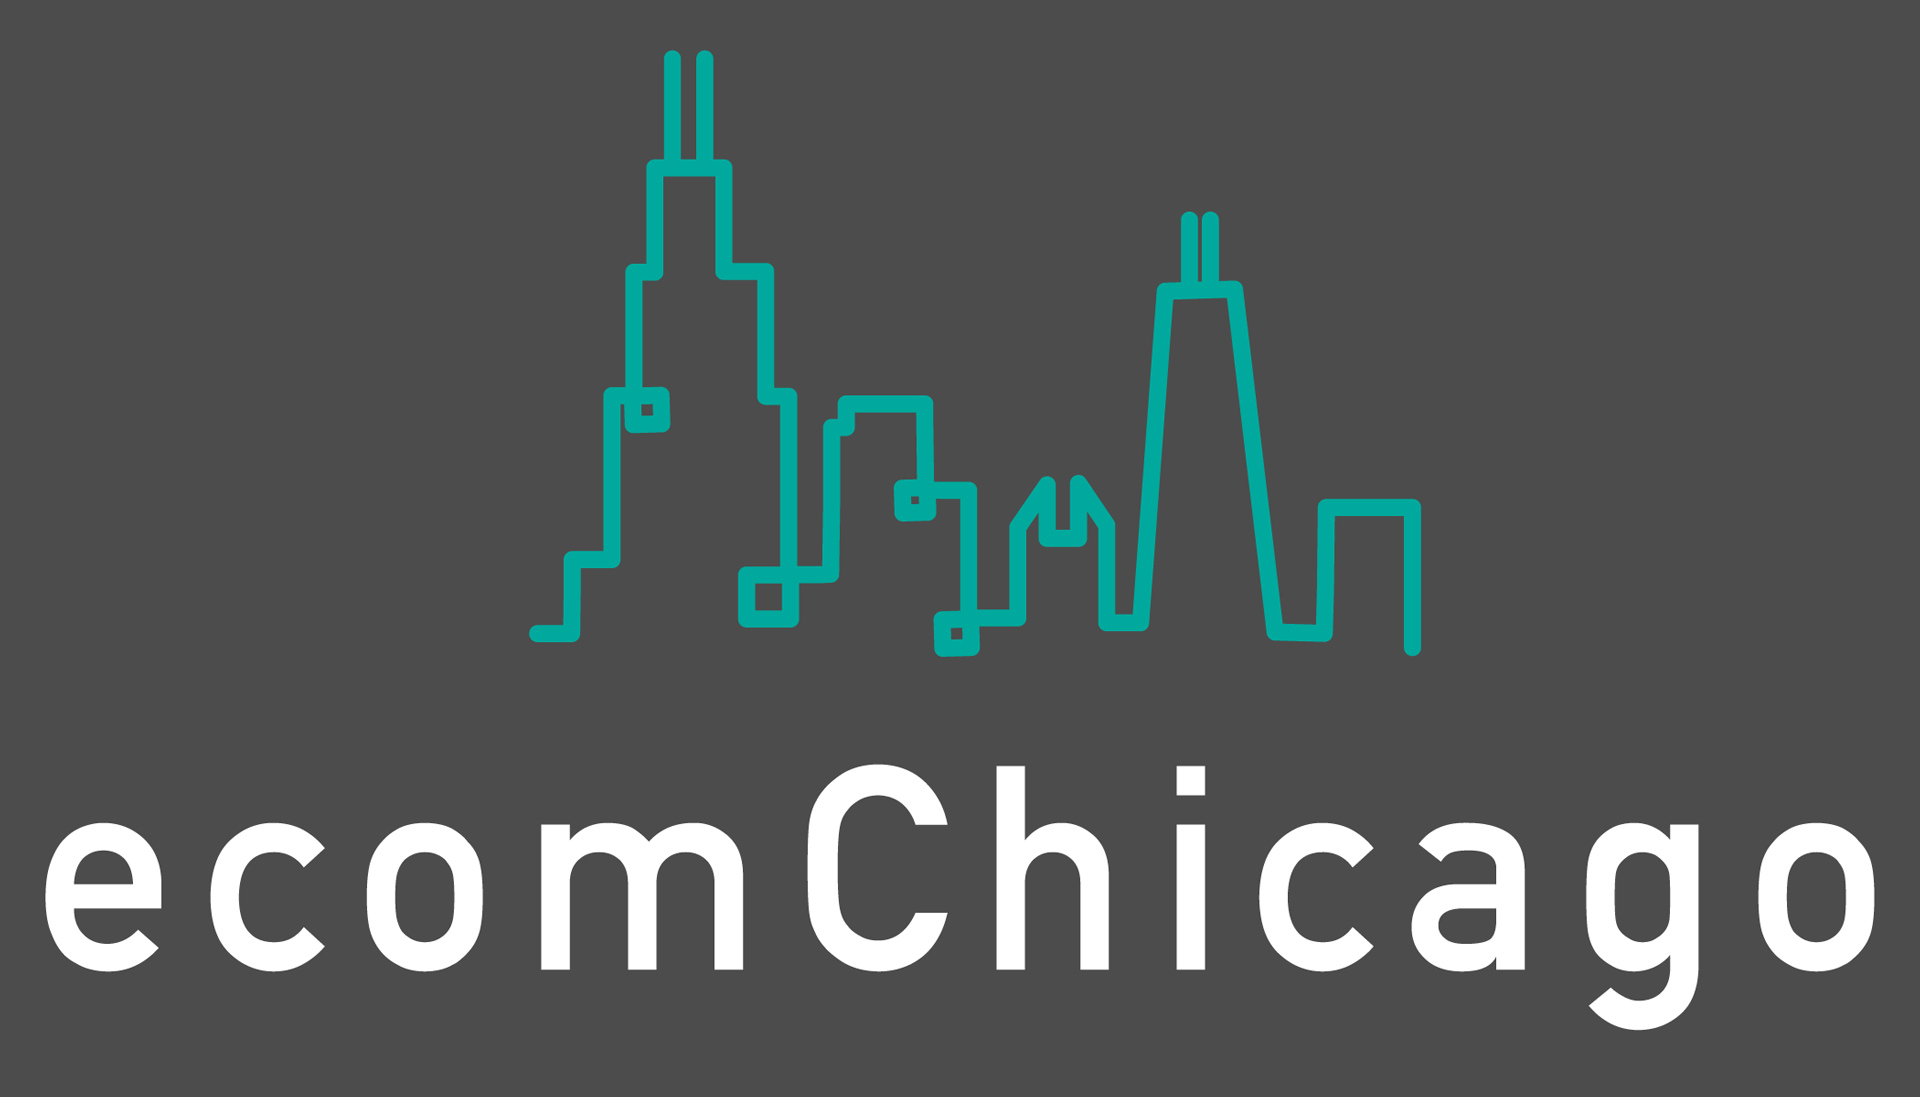 Event: eCom Chicago 2019